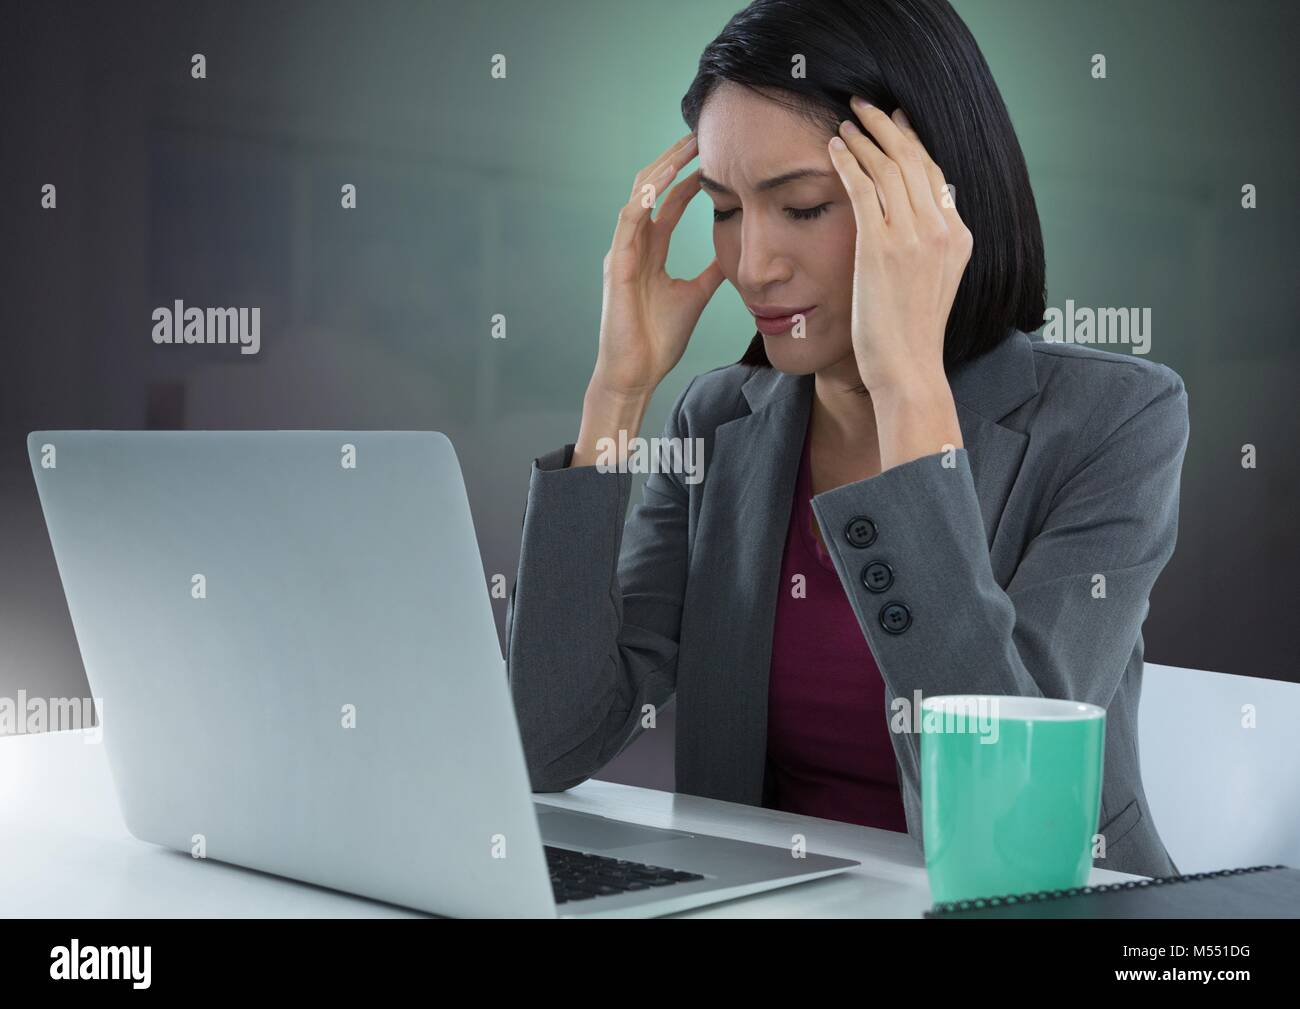 Businesswoman working on laptop with green background Stock Photo